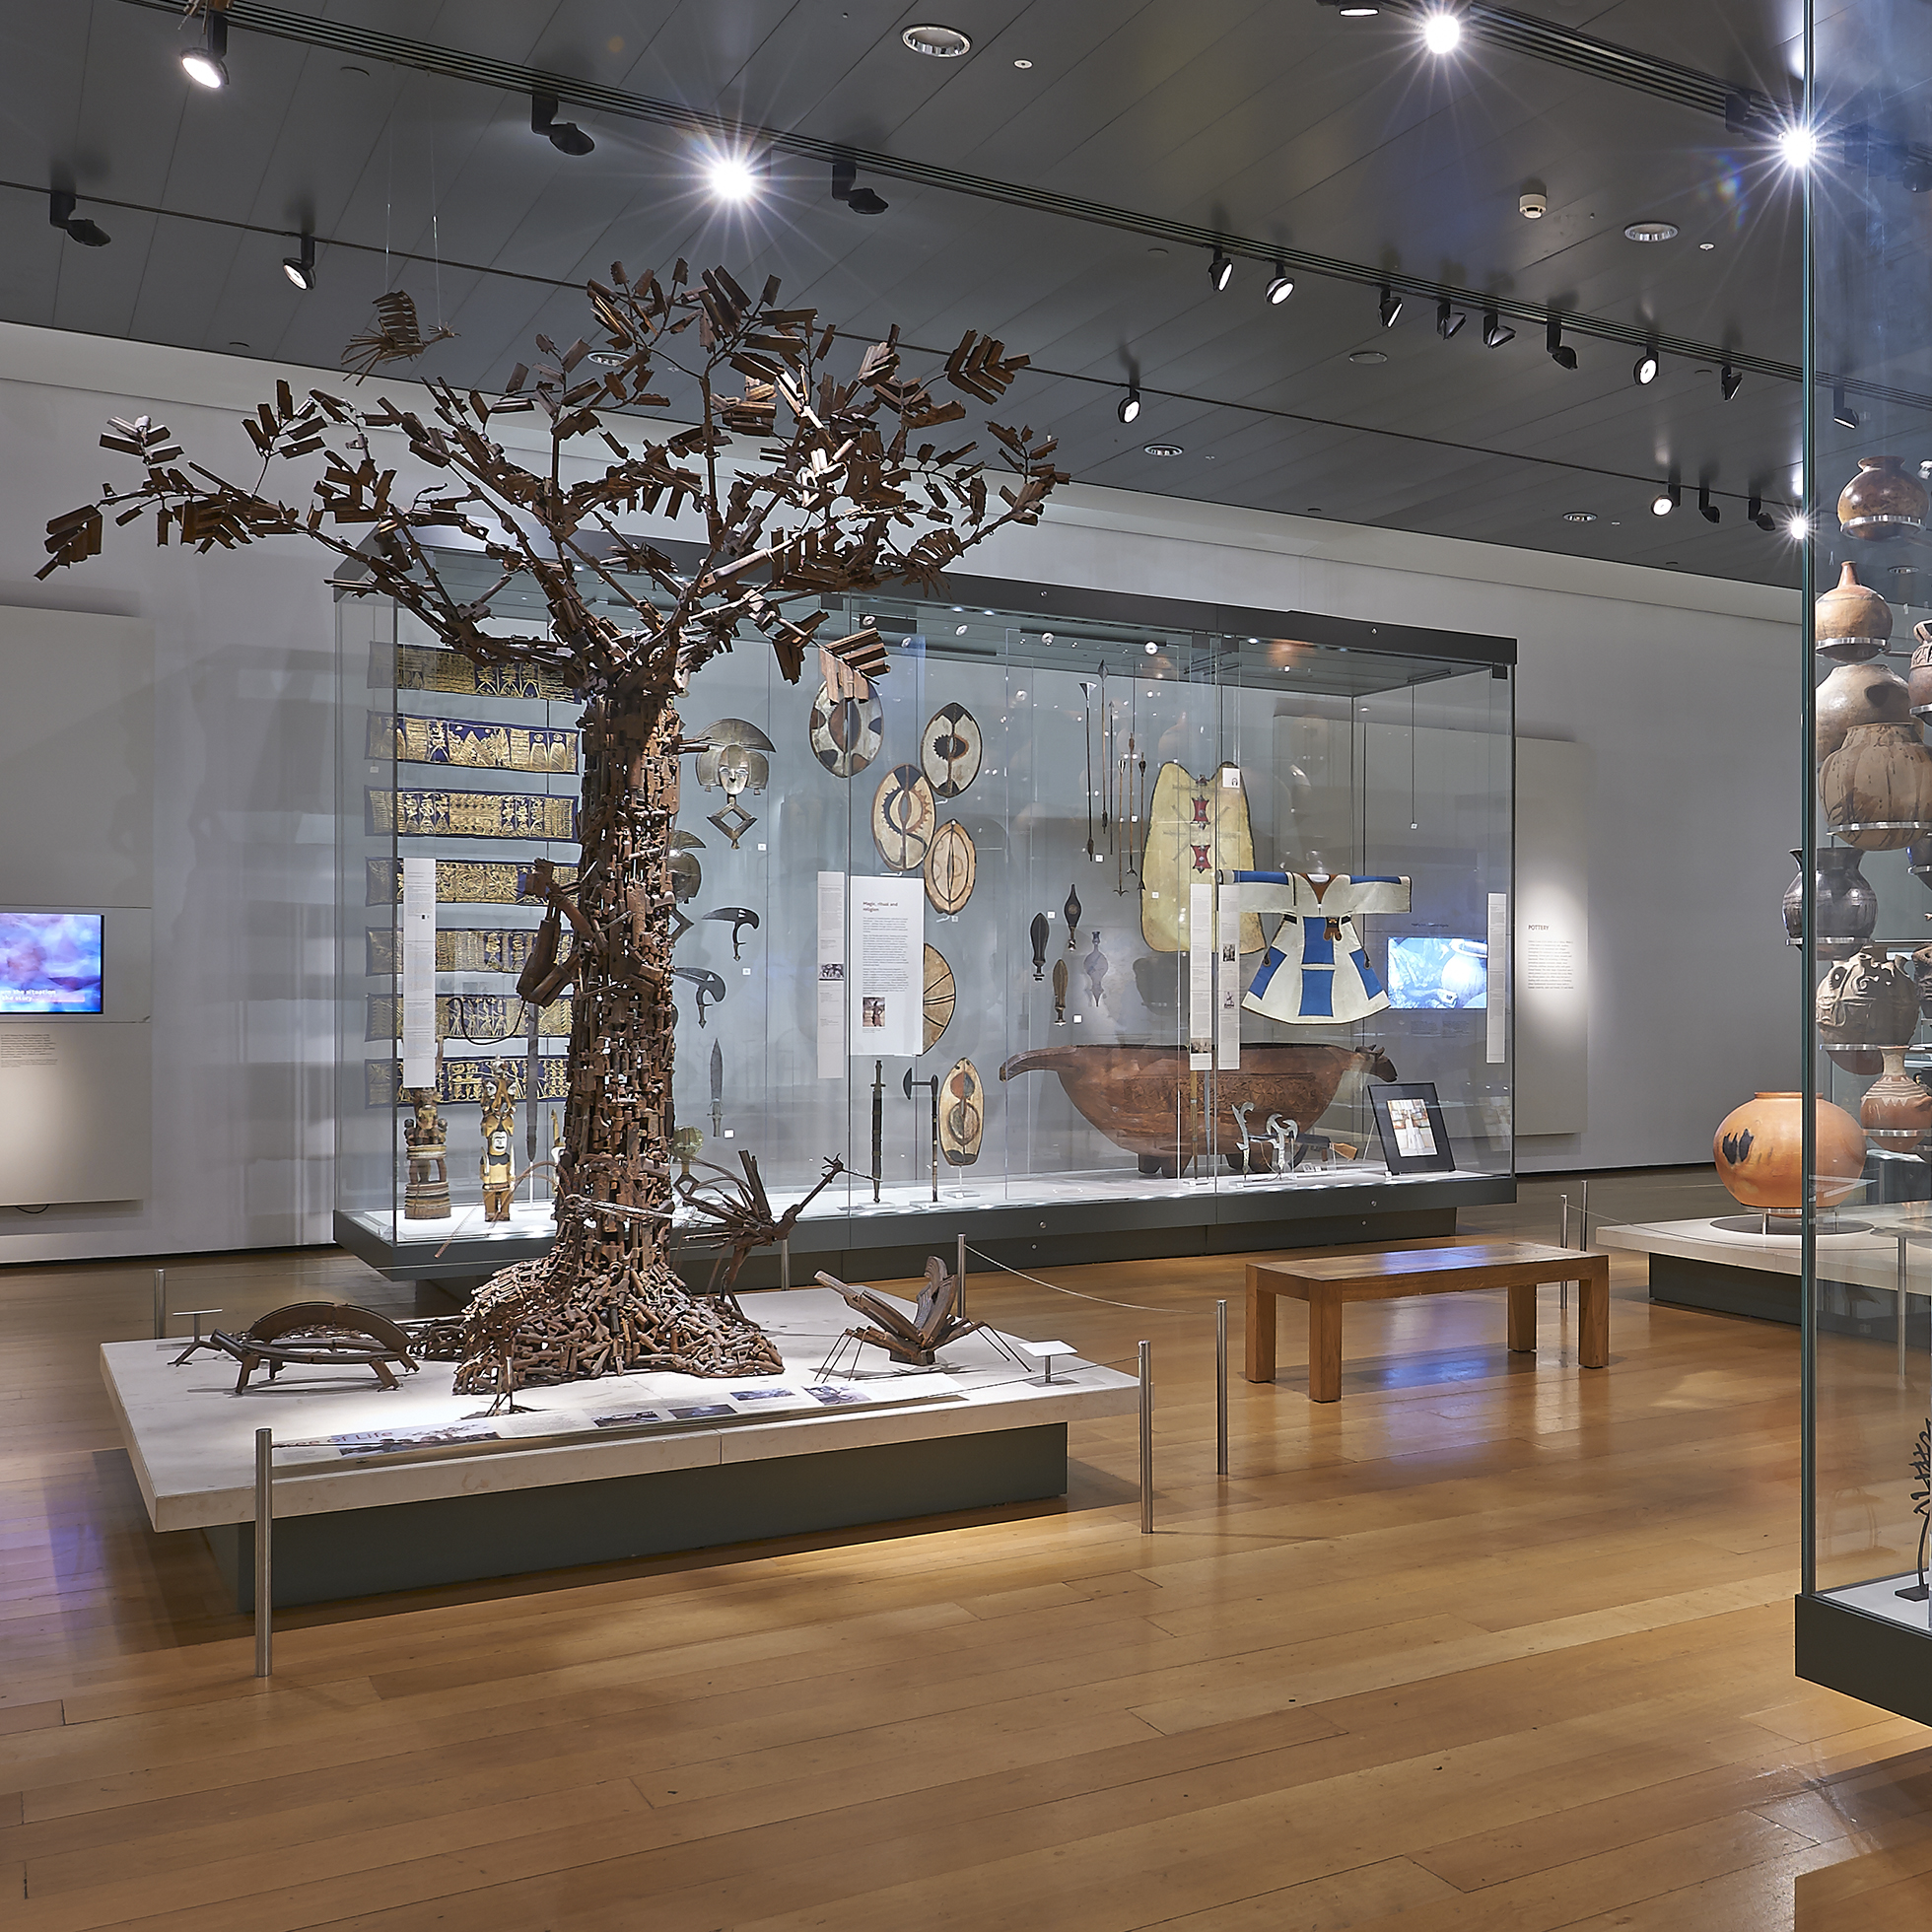 A photograph of Room 25 of the Museum, showing display cases filled with African objects, and the Tree of Life on a plinth in the centre of the Room.